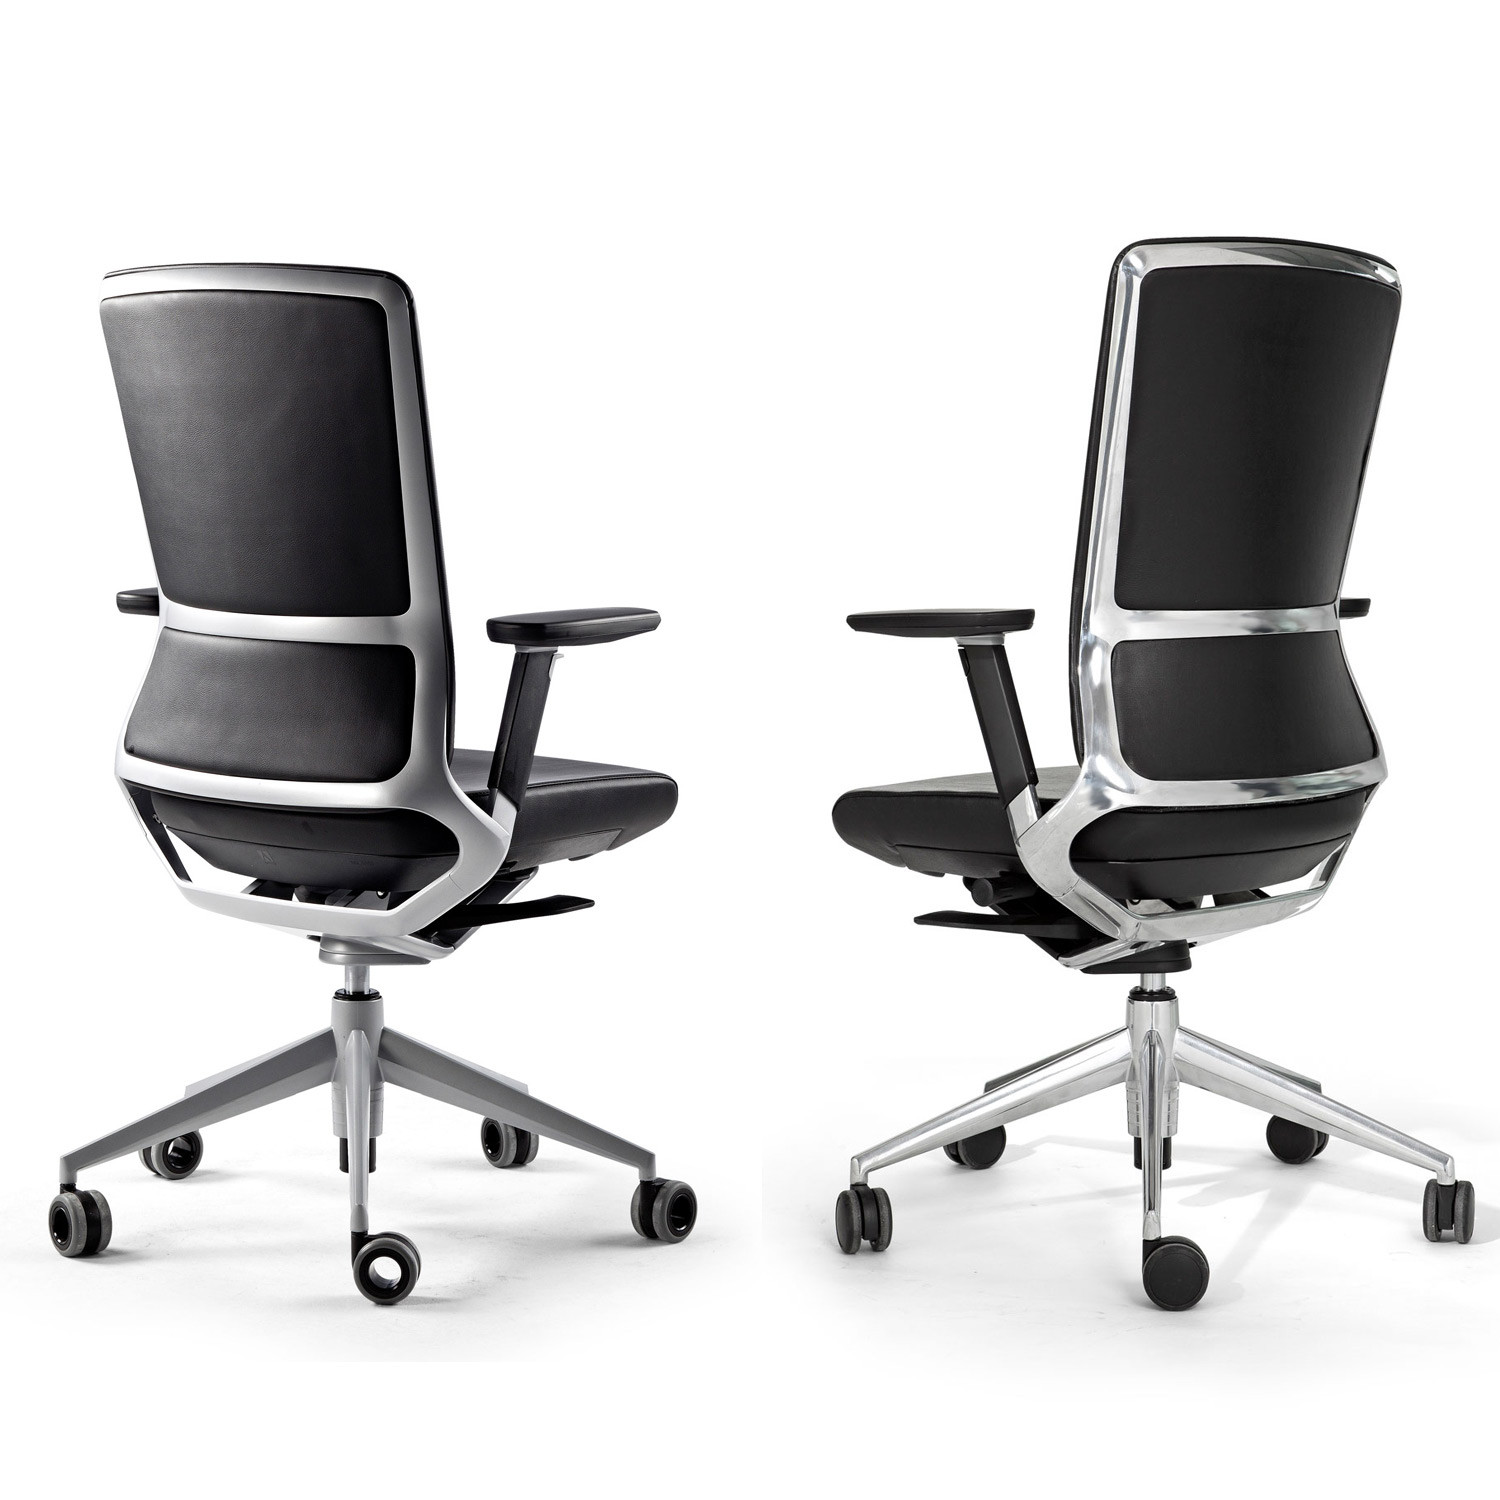 ergonomic chair under 500 fred meyer chairs tnk office operative uk apres furniture